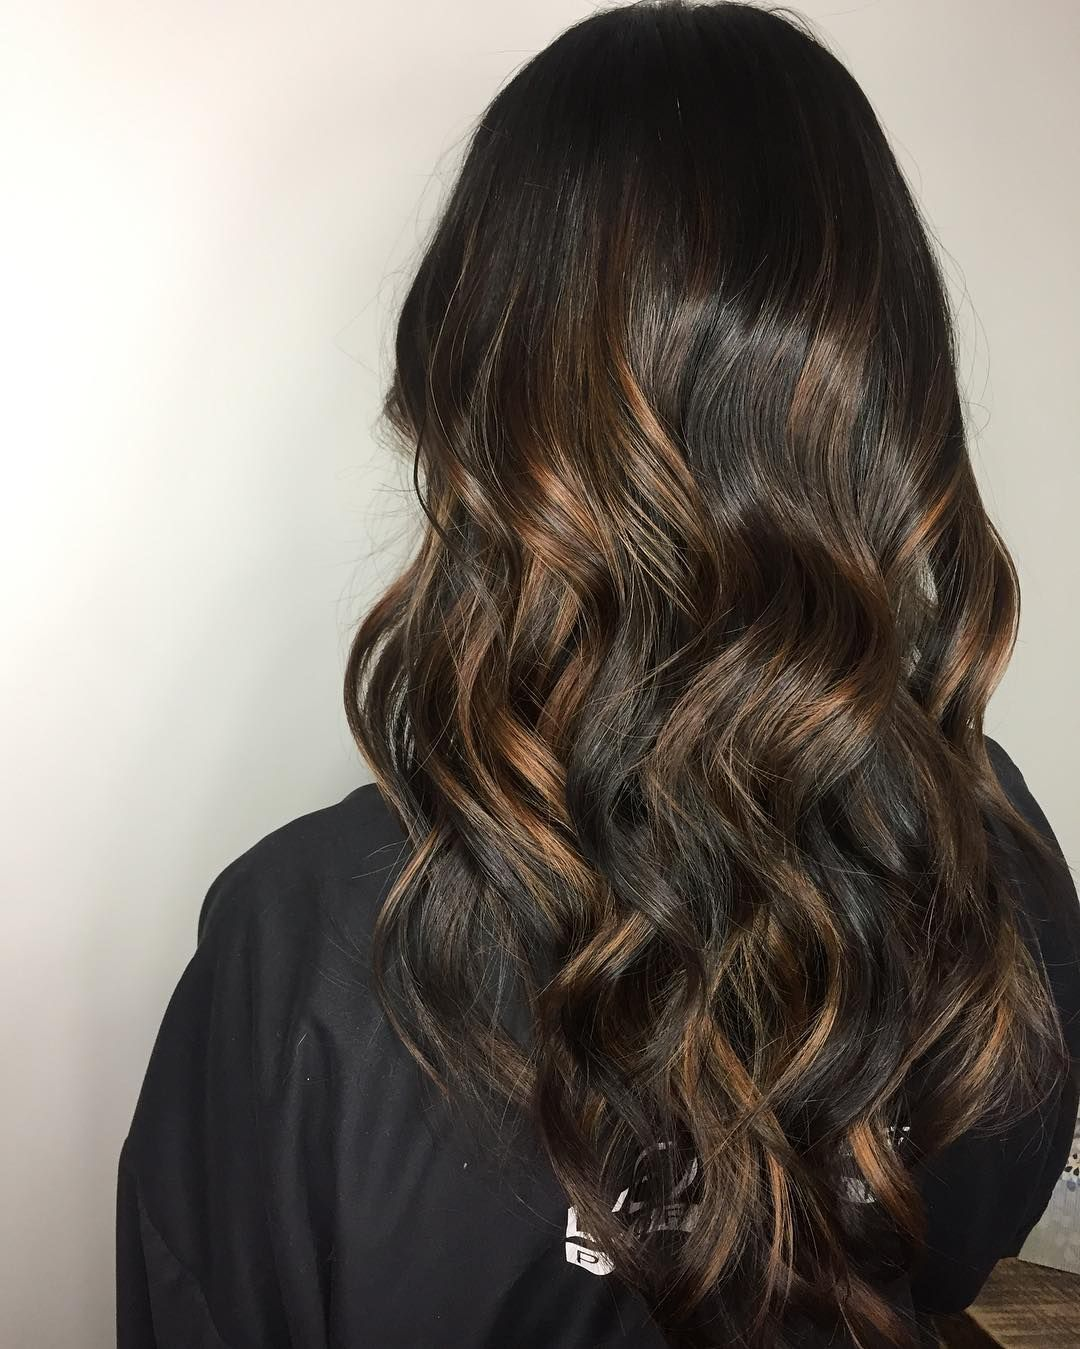 Hair Curly Natural Highlights Brunette Long Hair Styles Long Hair Styles Long Curly Hair